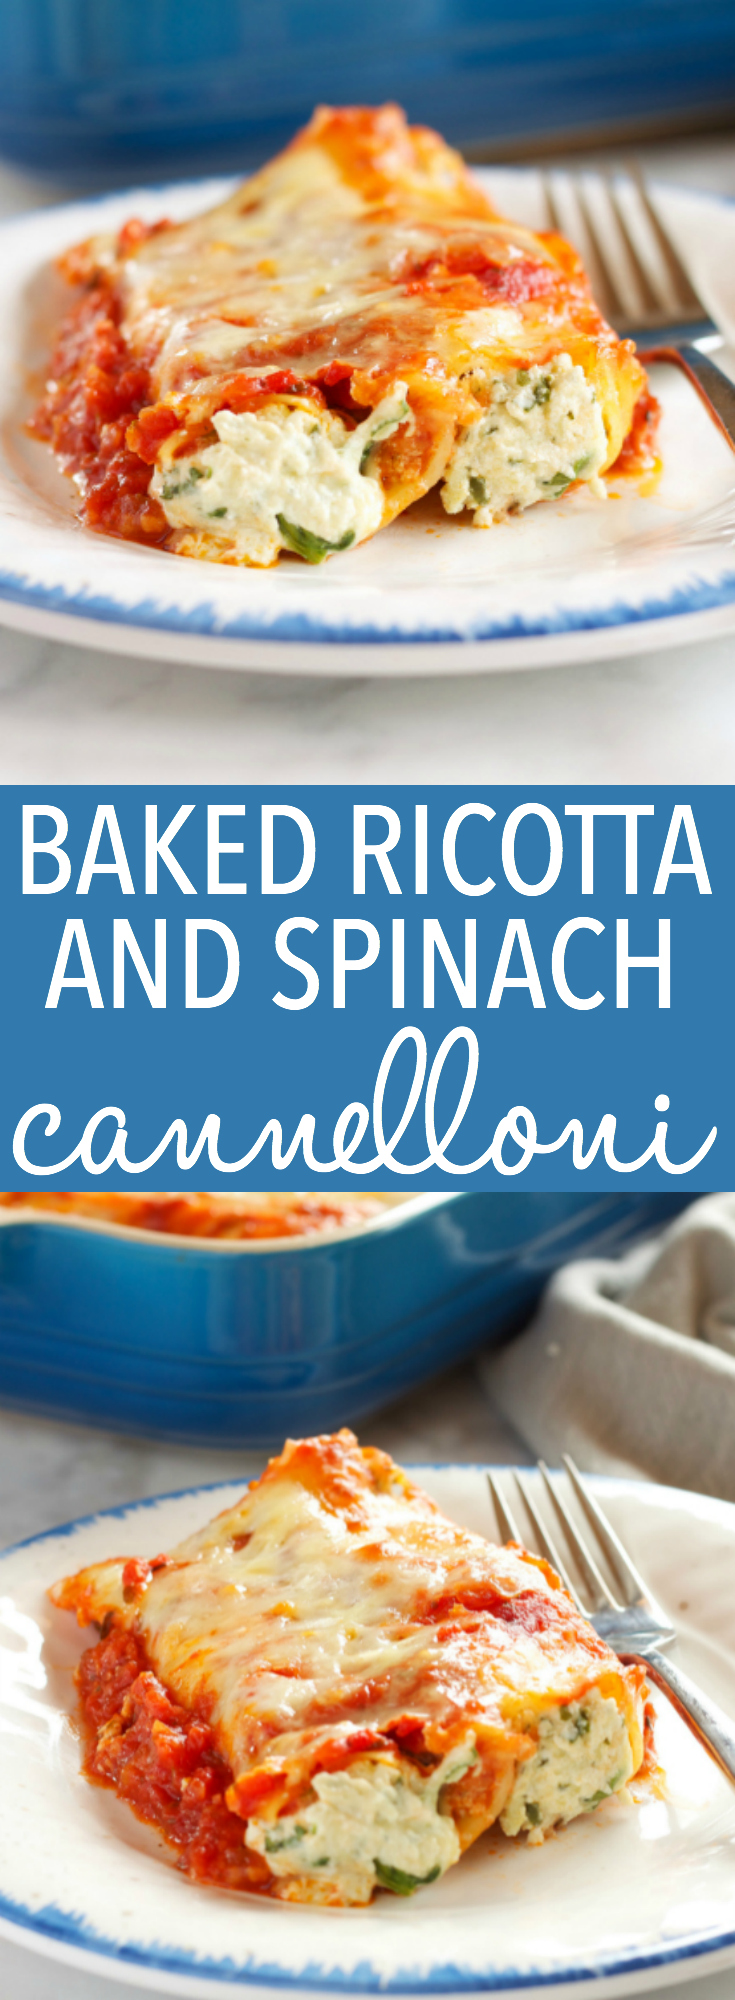 This Baked Ricotta and Spinach Cannelloni (Manicotti Pasta) is made with three delicious cheeses and it's the perfect easy comfort food recipe that's also vegetarian! It's a pasta lover's dream recipe! Recipe from thebusybaker.ca! via @busybakerblog